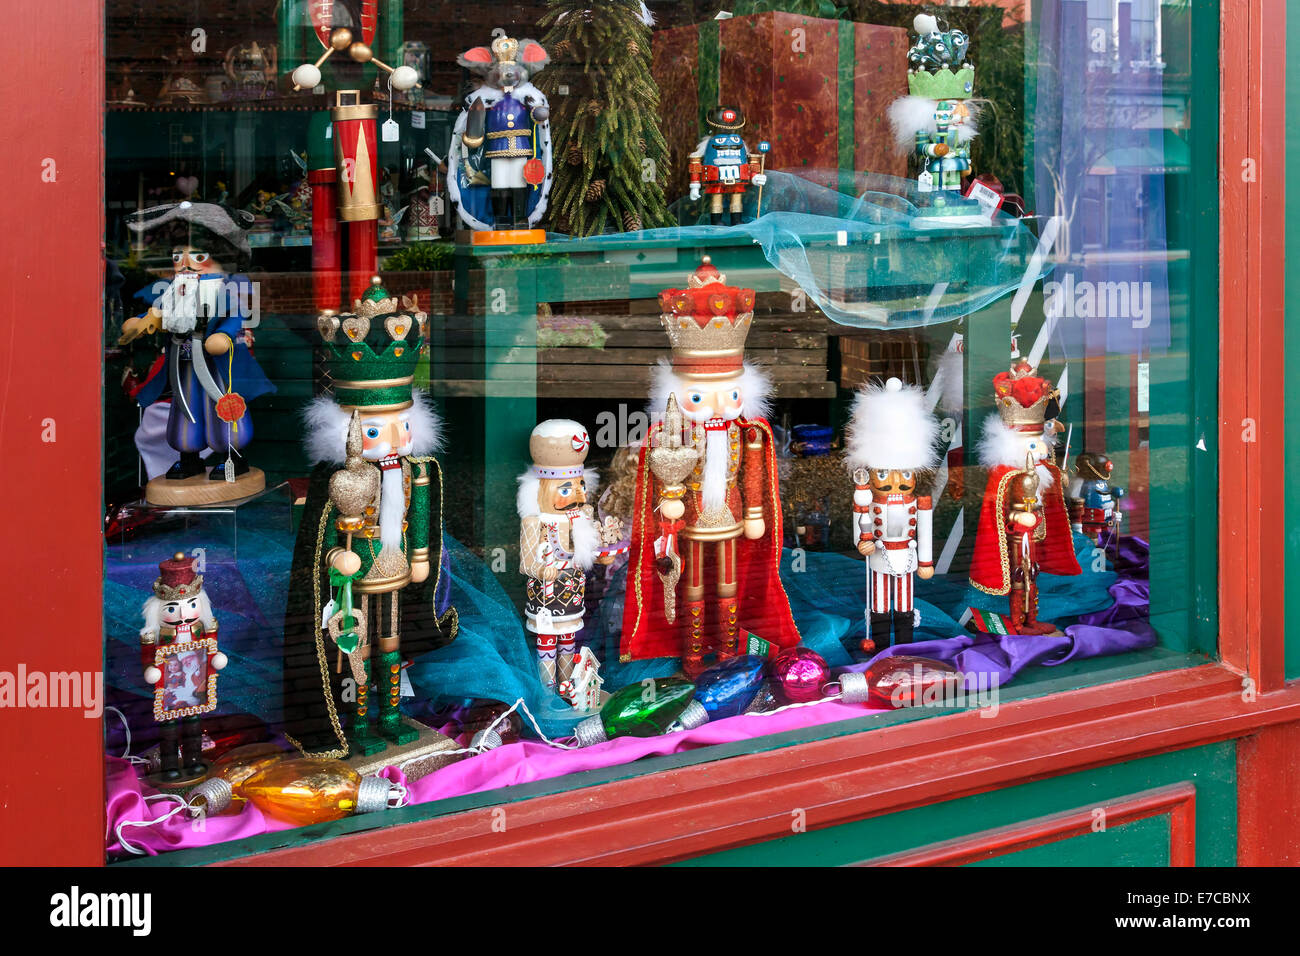 santas nutcrackers and christmas decorations in old shop window in historic district of fernandina beach